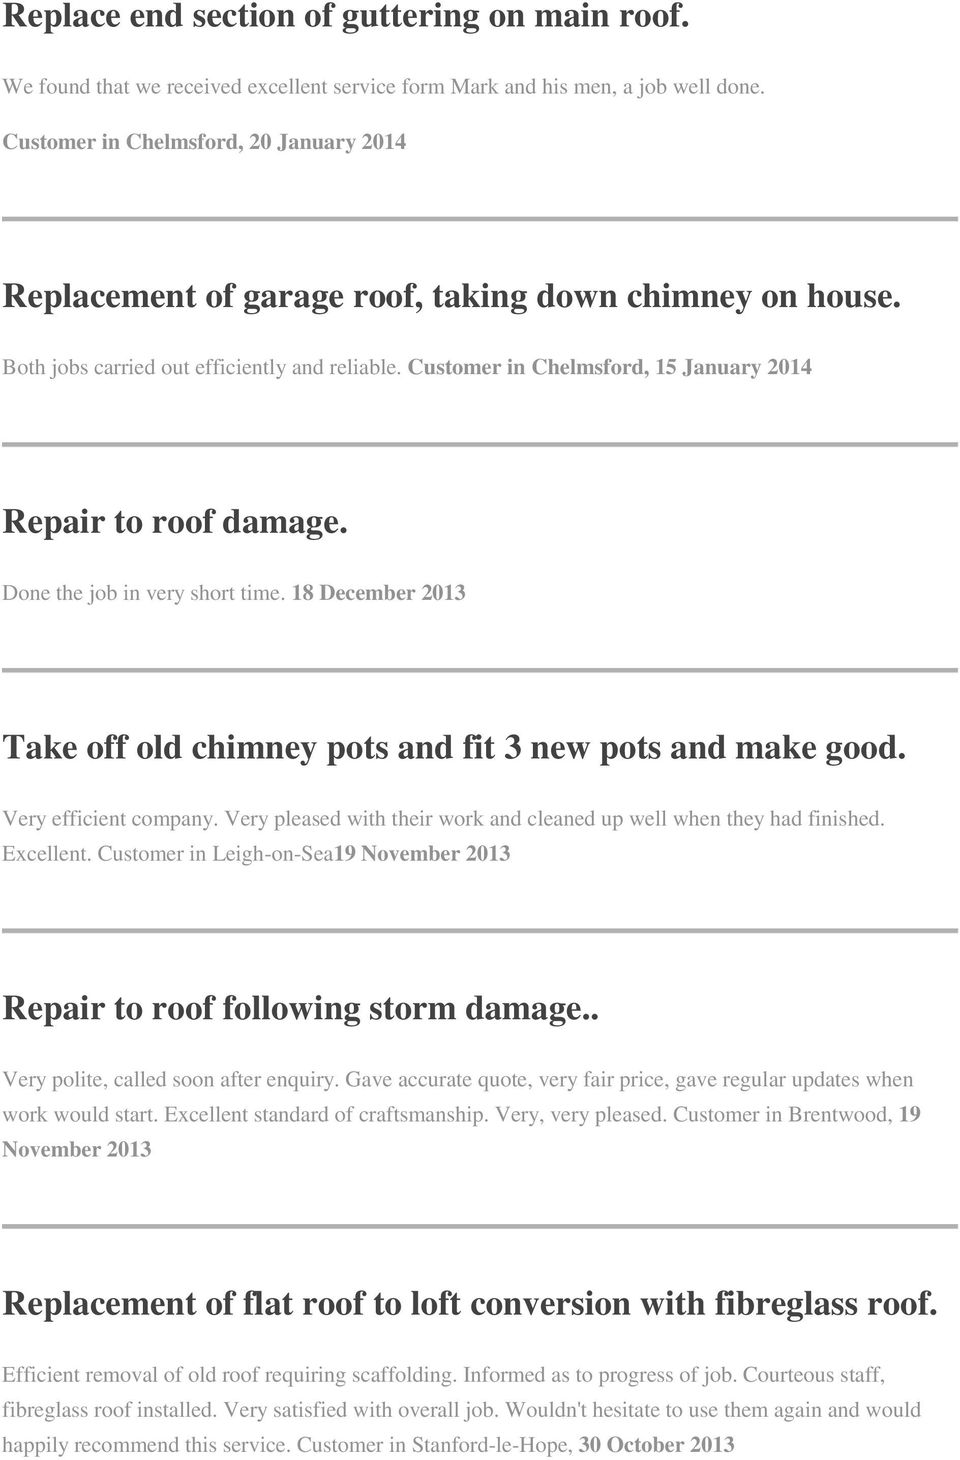 Customer in Chelmsford, 15 January 2014 Repair to roof damage. Done the job in very short time. 18 December 2013 Take off old chimney pots and fit 3 new pots and make good. Very efficient company.